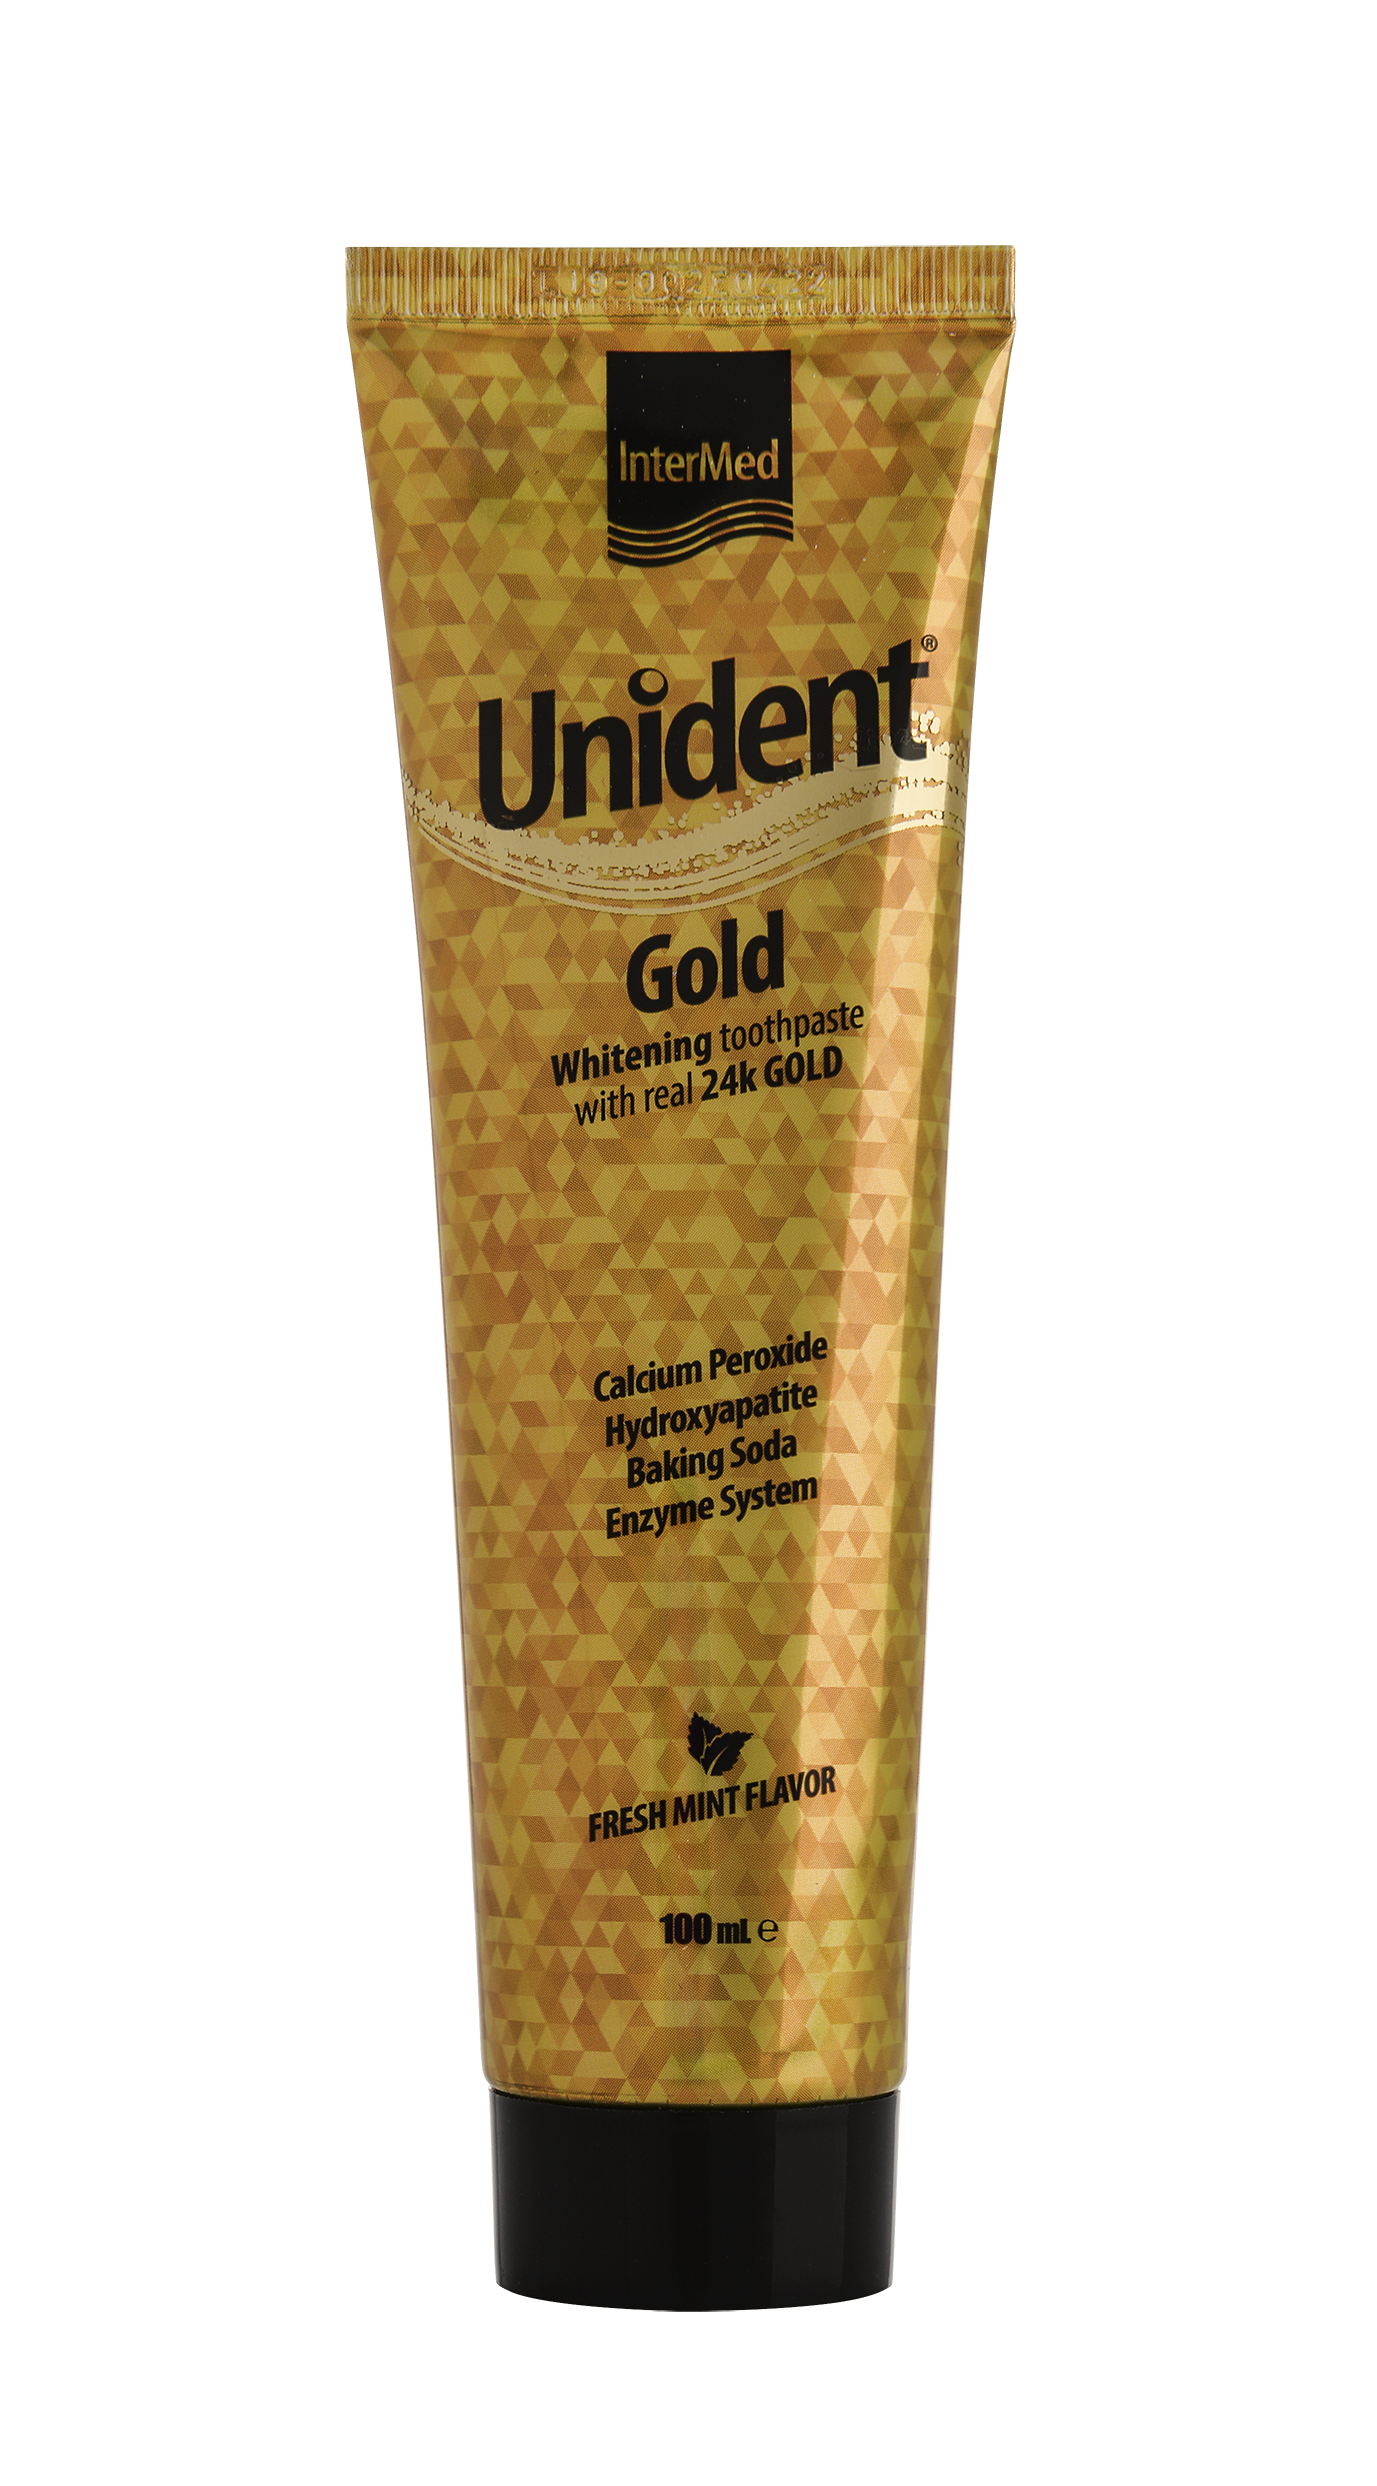 Unident gold toothpaste tube packaging